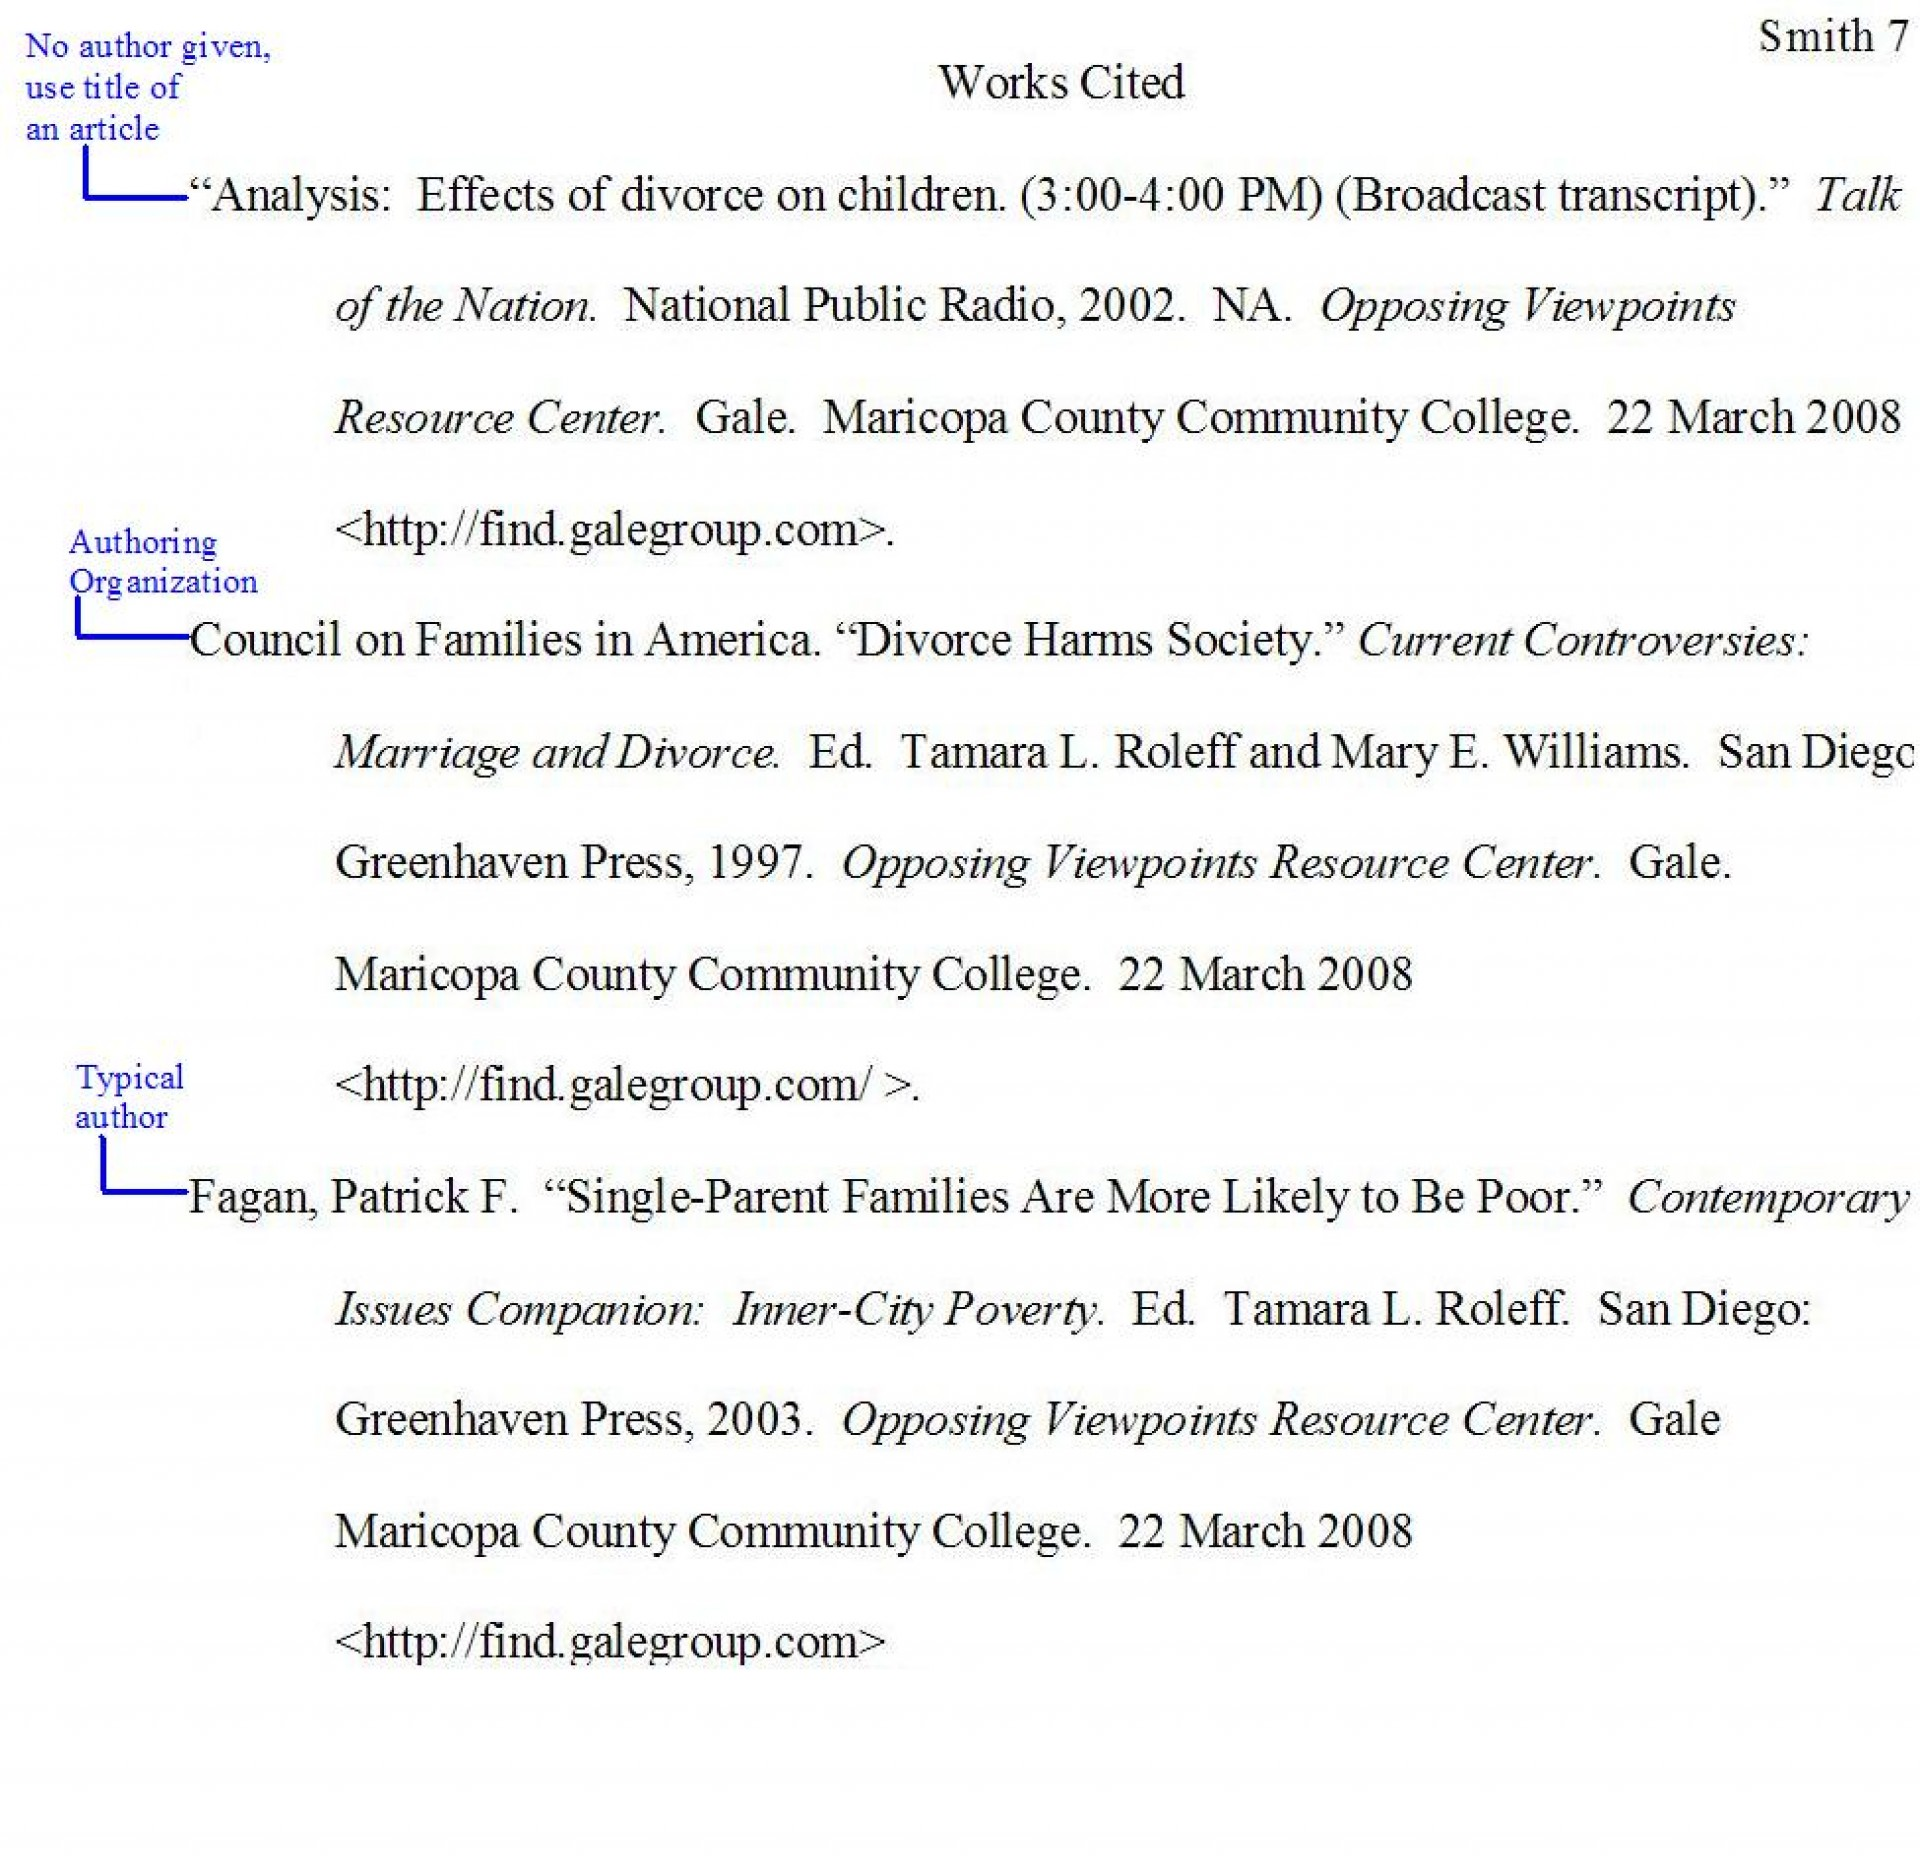 006 Cited Research Paper Samplewrkctd Archaicawful Do Works Page For A About The Little Rock Nine Example 1920